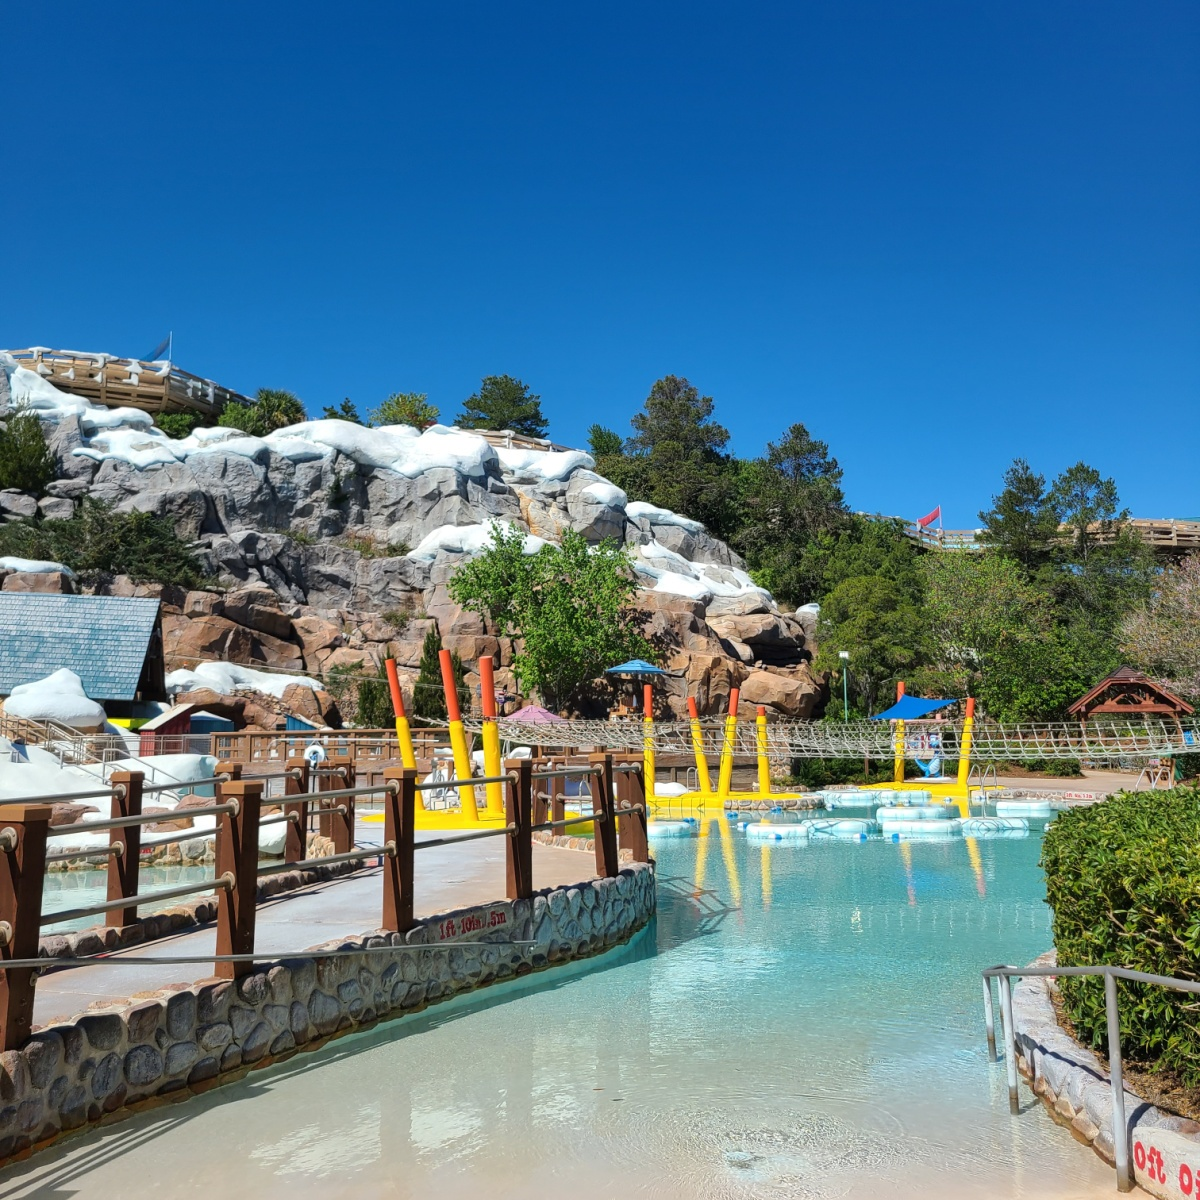 Top Things To Do At Disney's Blizzard Beach Water Park